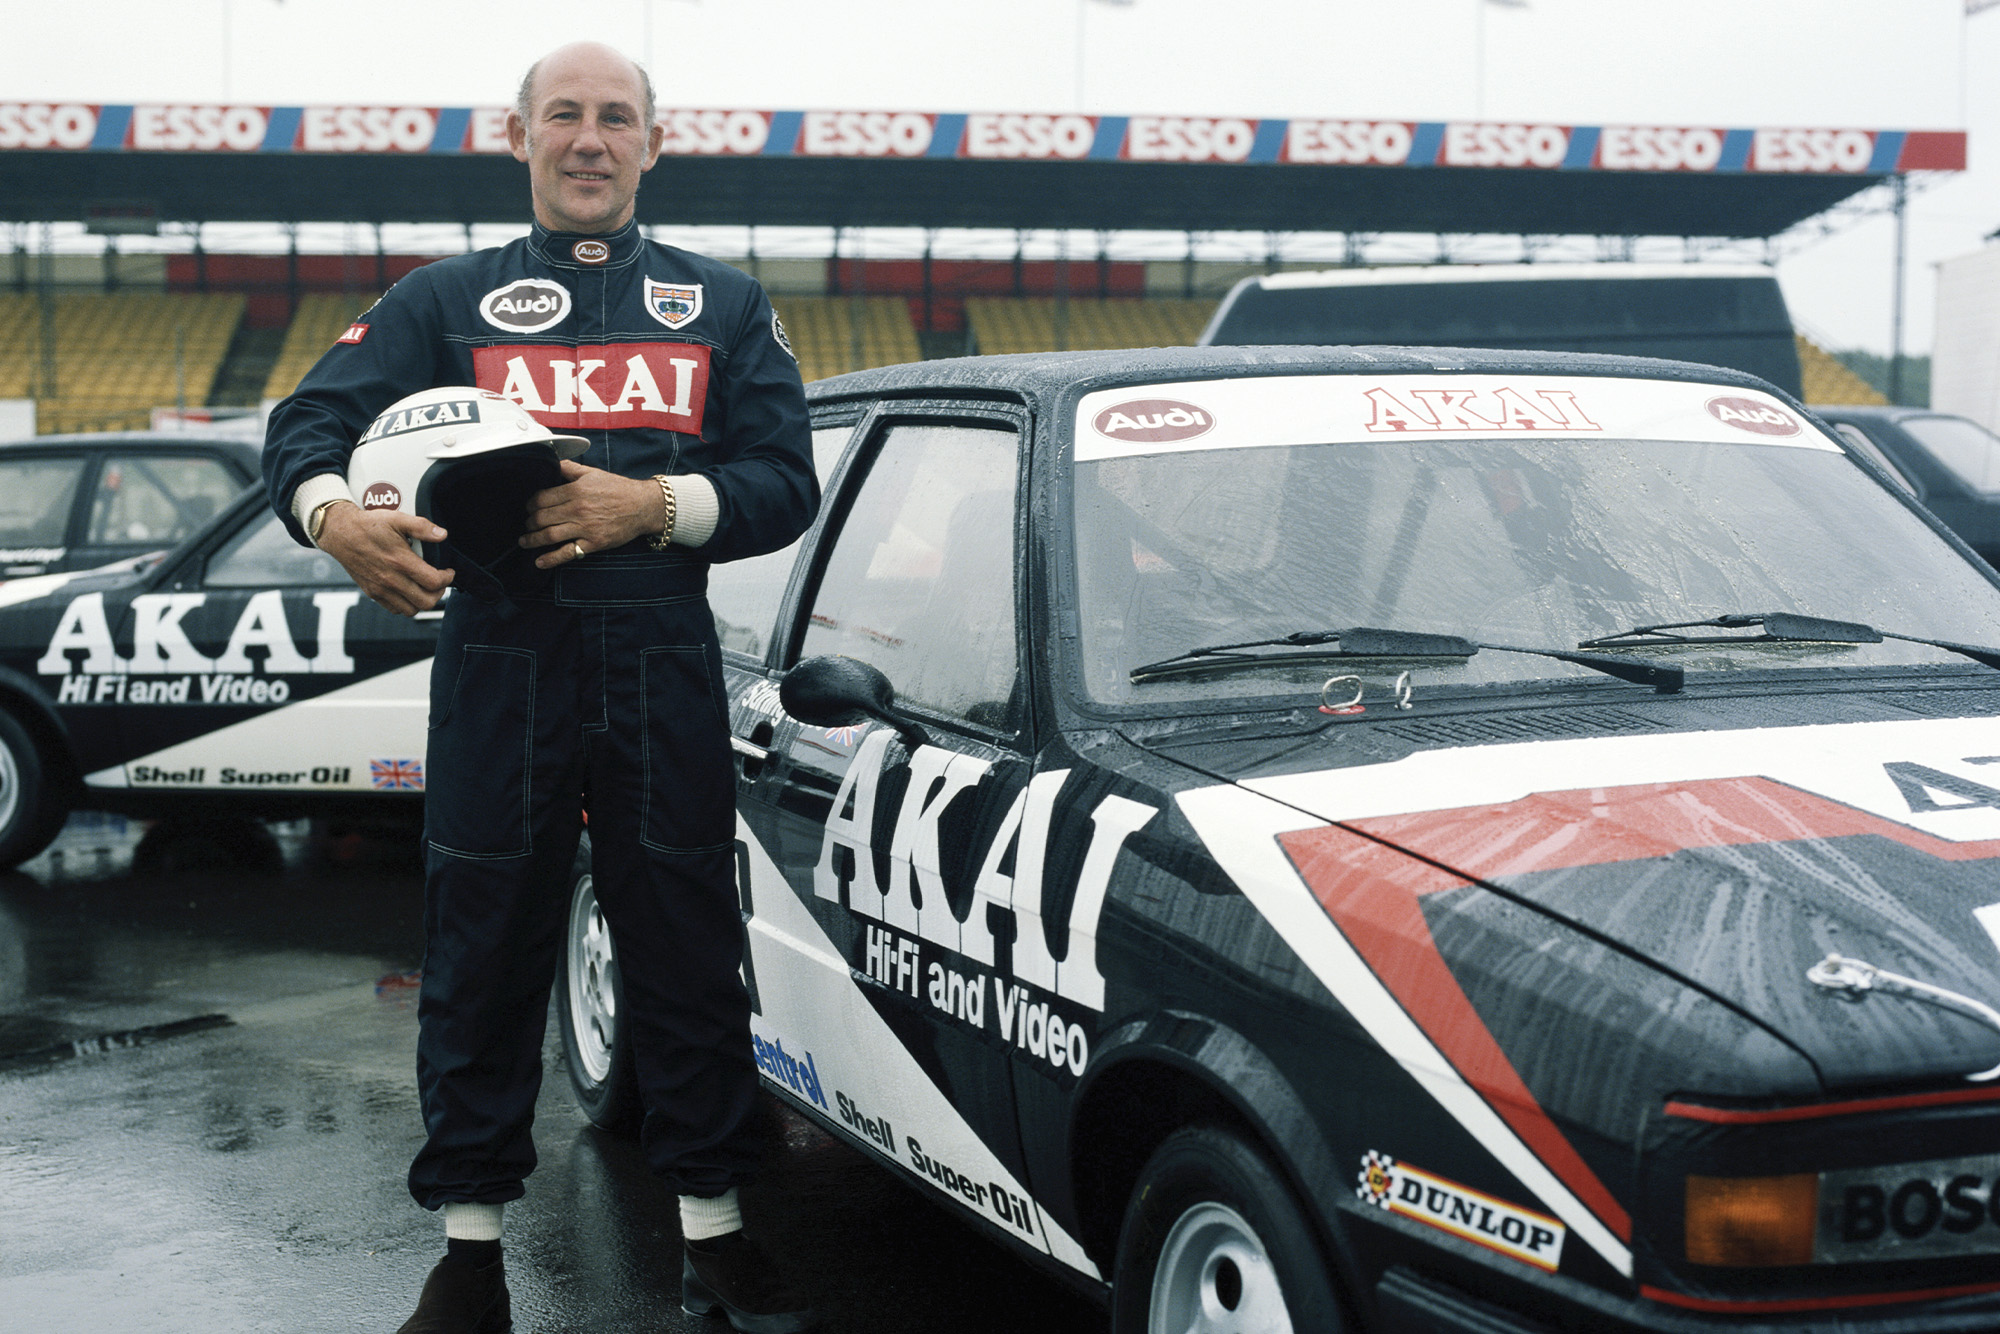 Stirling Moss next to his Audi Touring Car in 1980